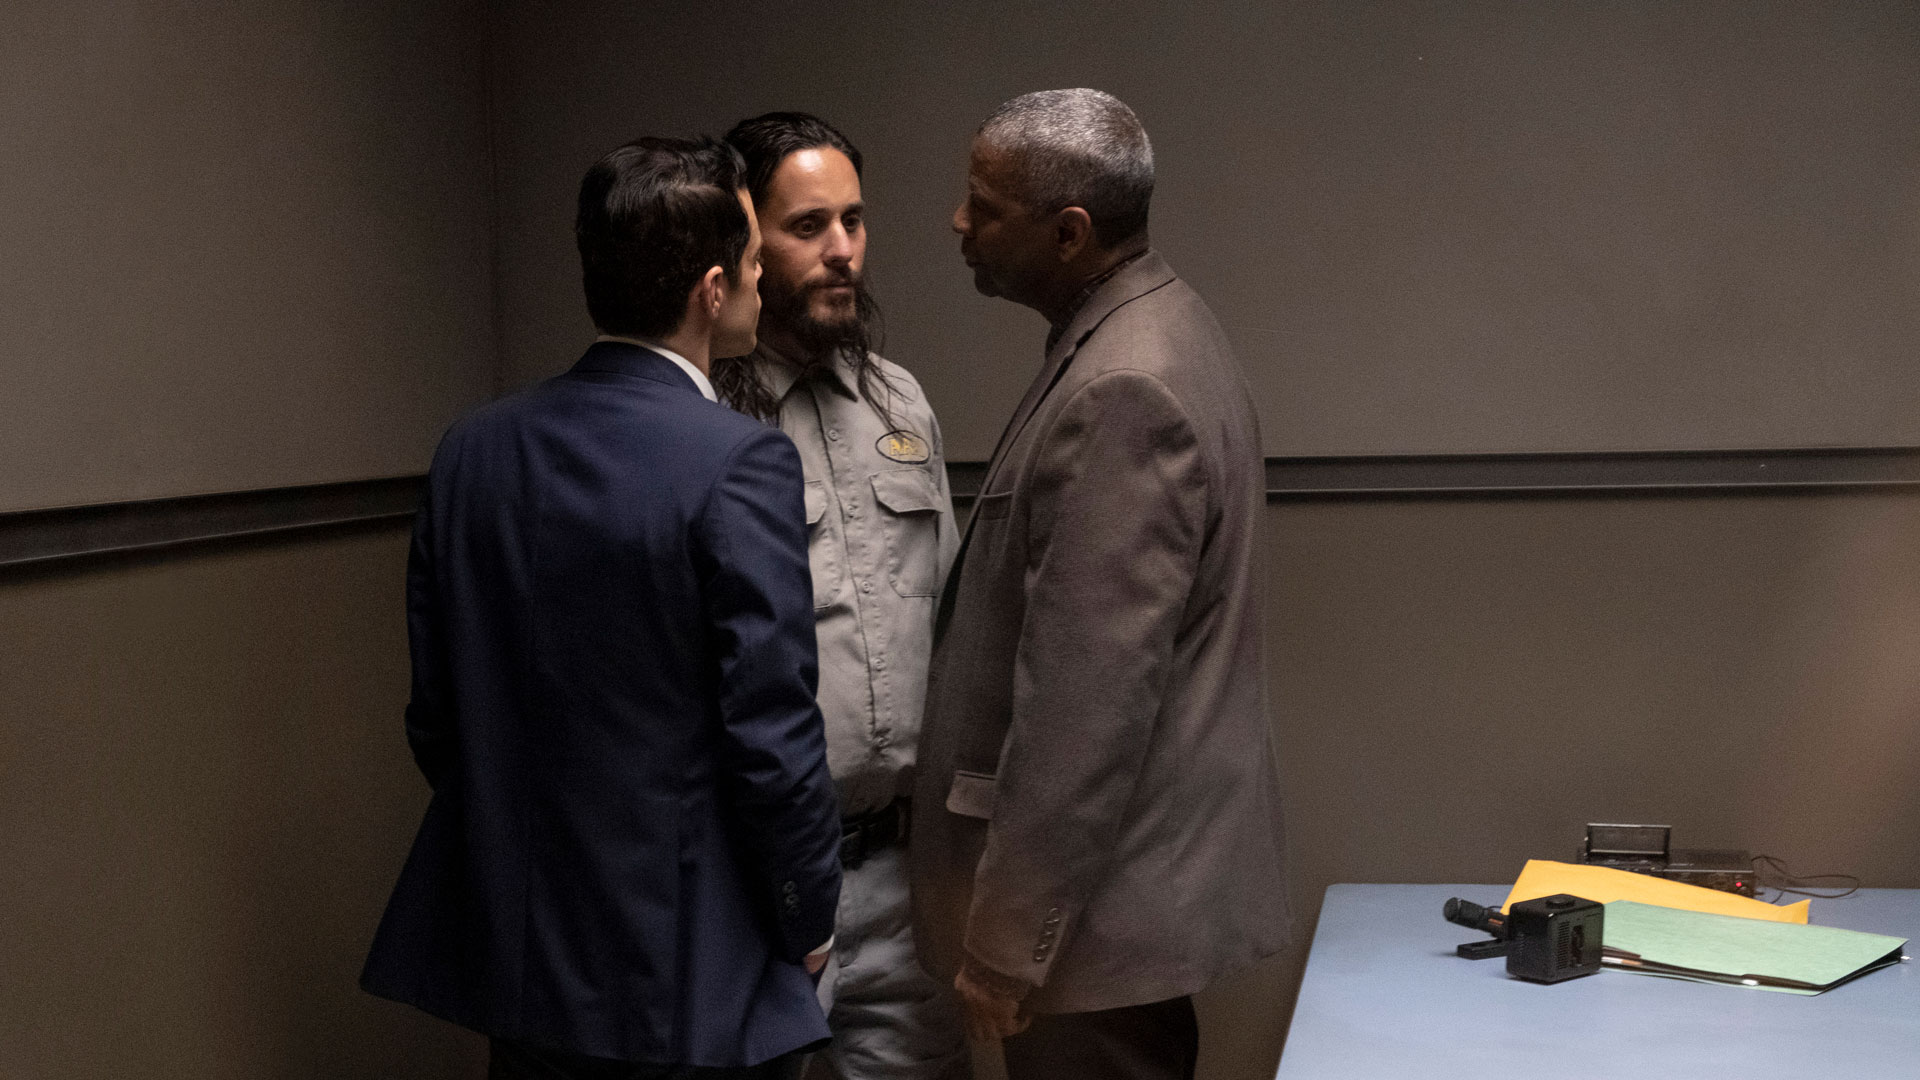 "Sergeant Jim Baxter (Rami Malek) und Deputy Sheriff Joe Deacon (Denzel Washington) verhören den Serienkiller (Jared Leto). Eine Szene aus dem Fillm ""The Little Things""."